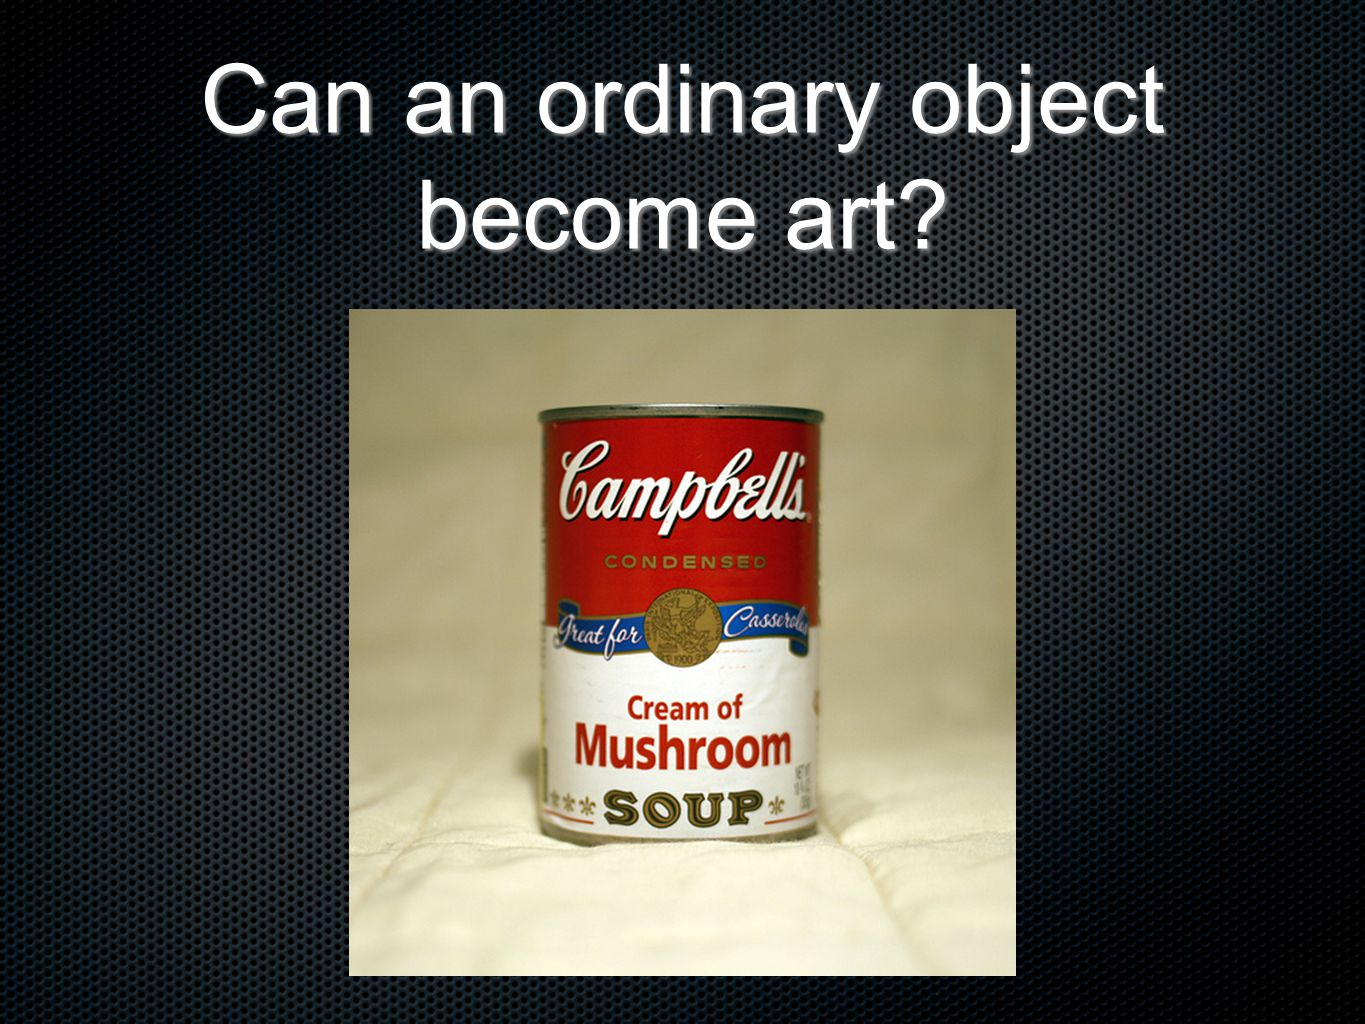 Can an ordinary object become art